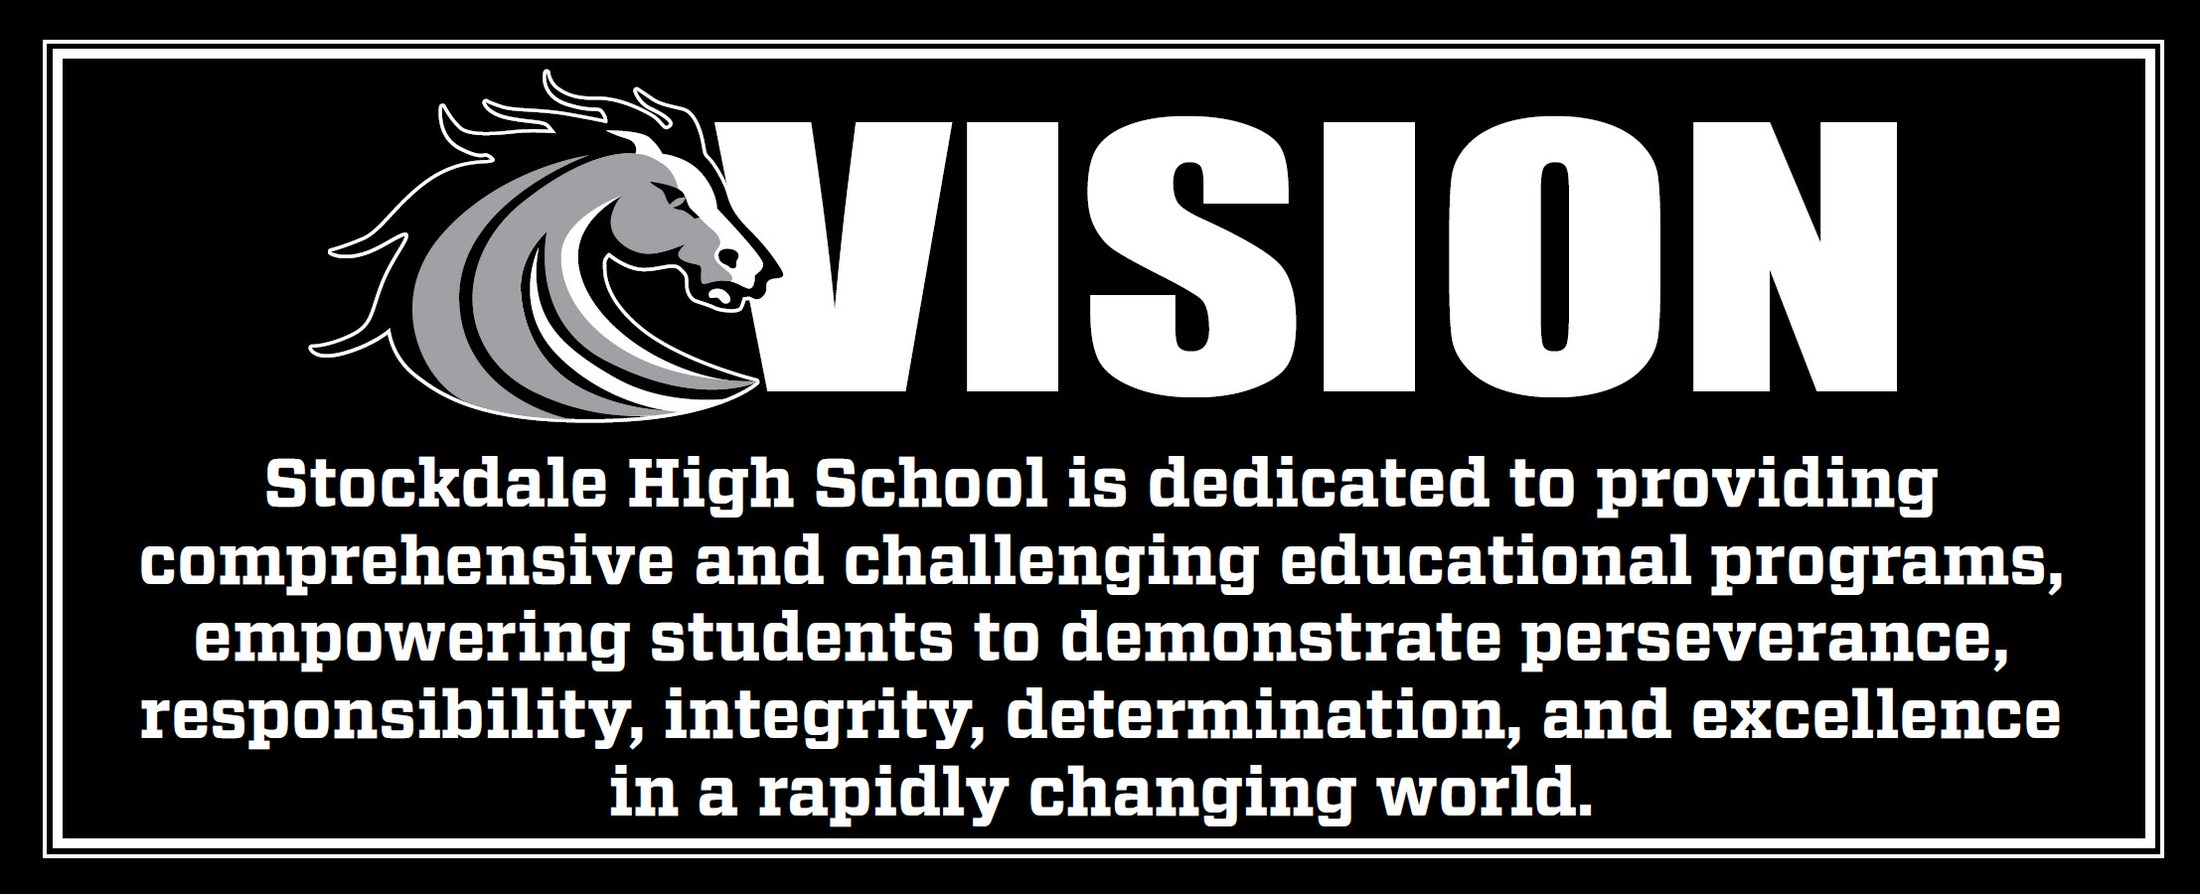 School Vision